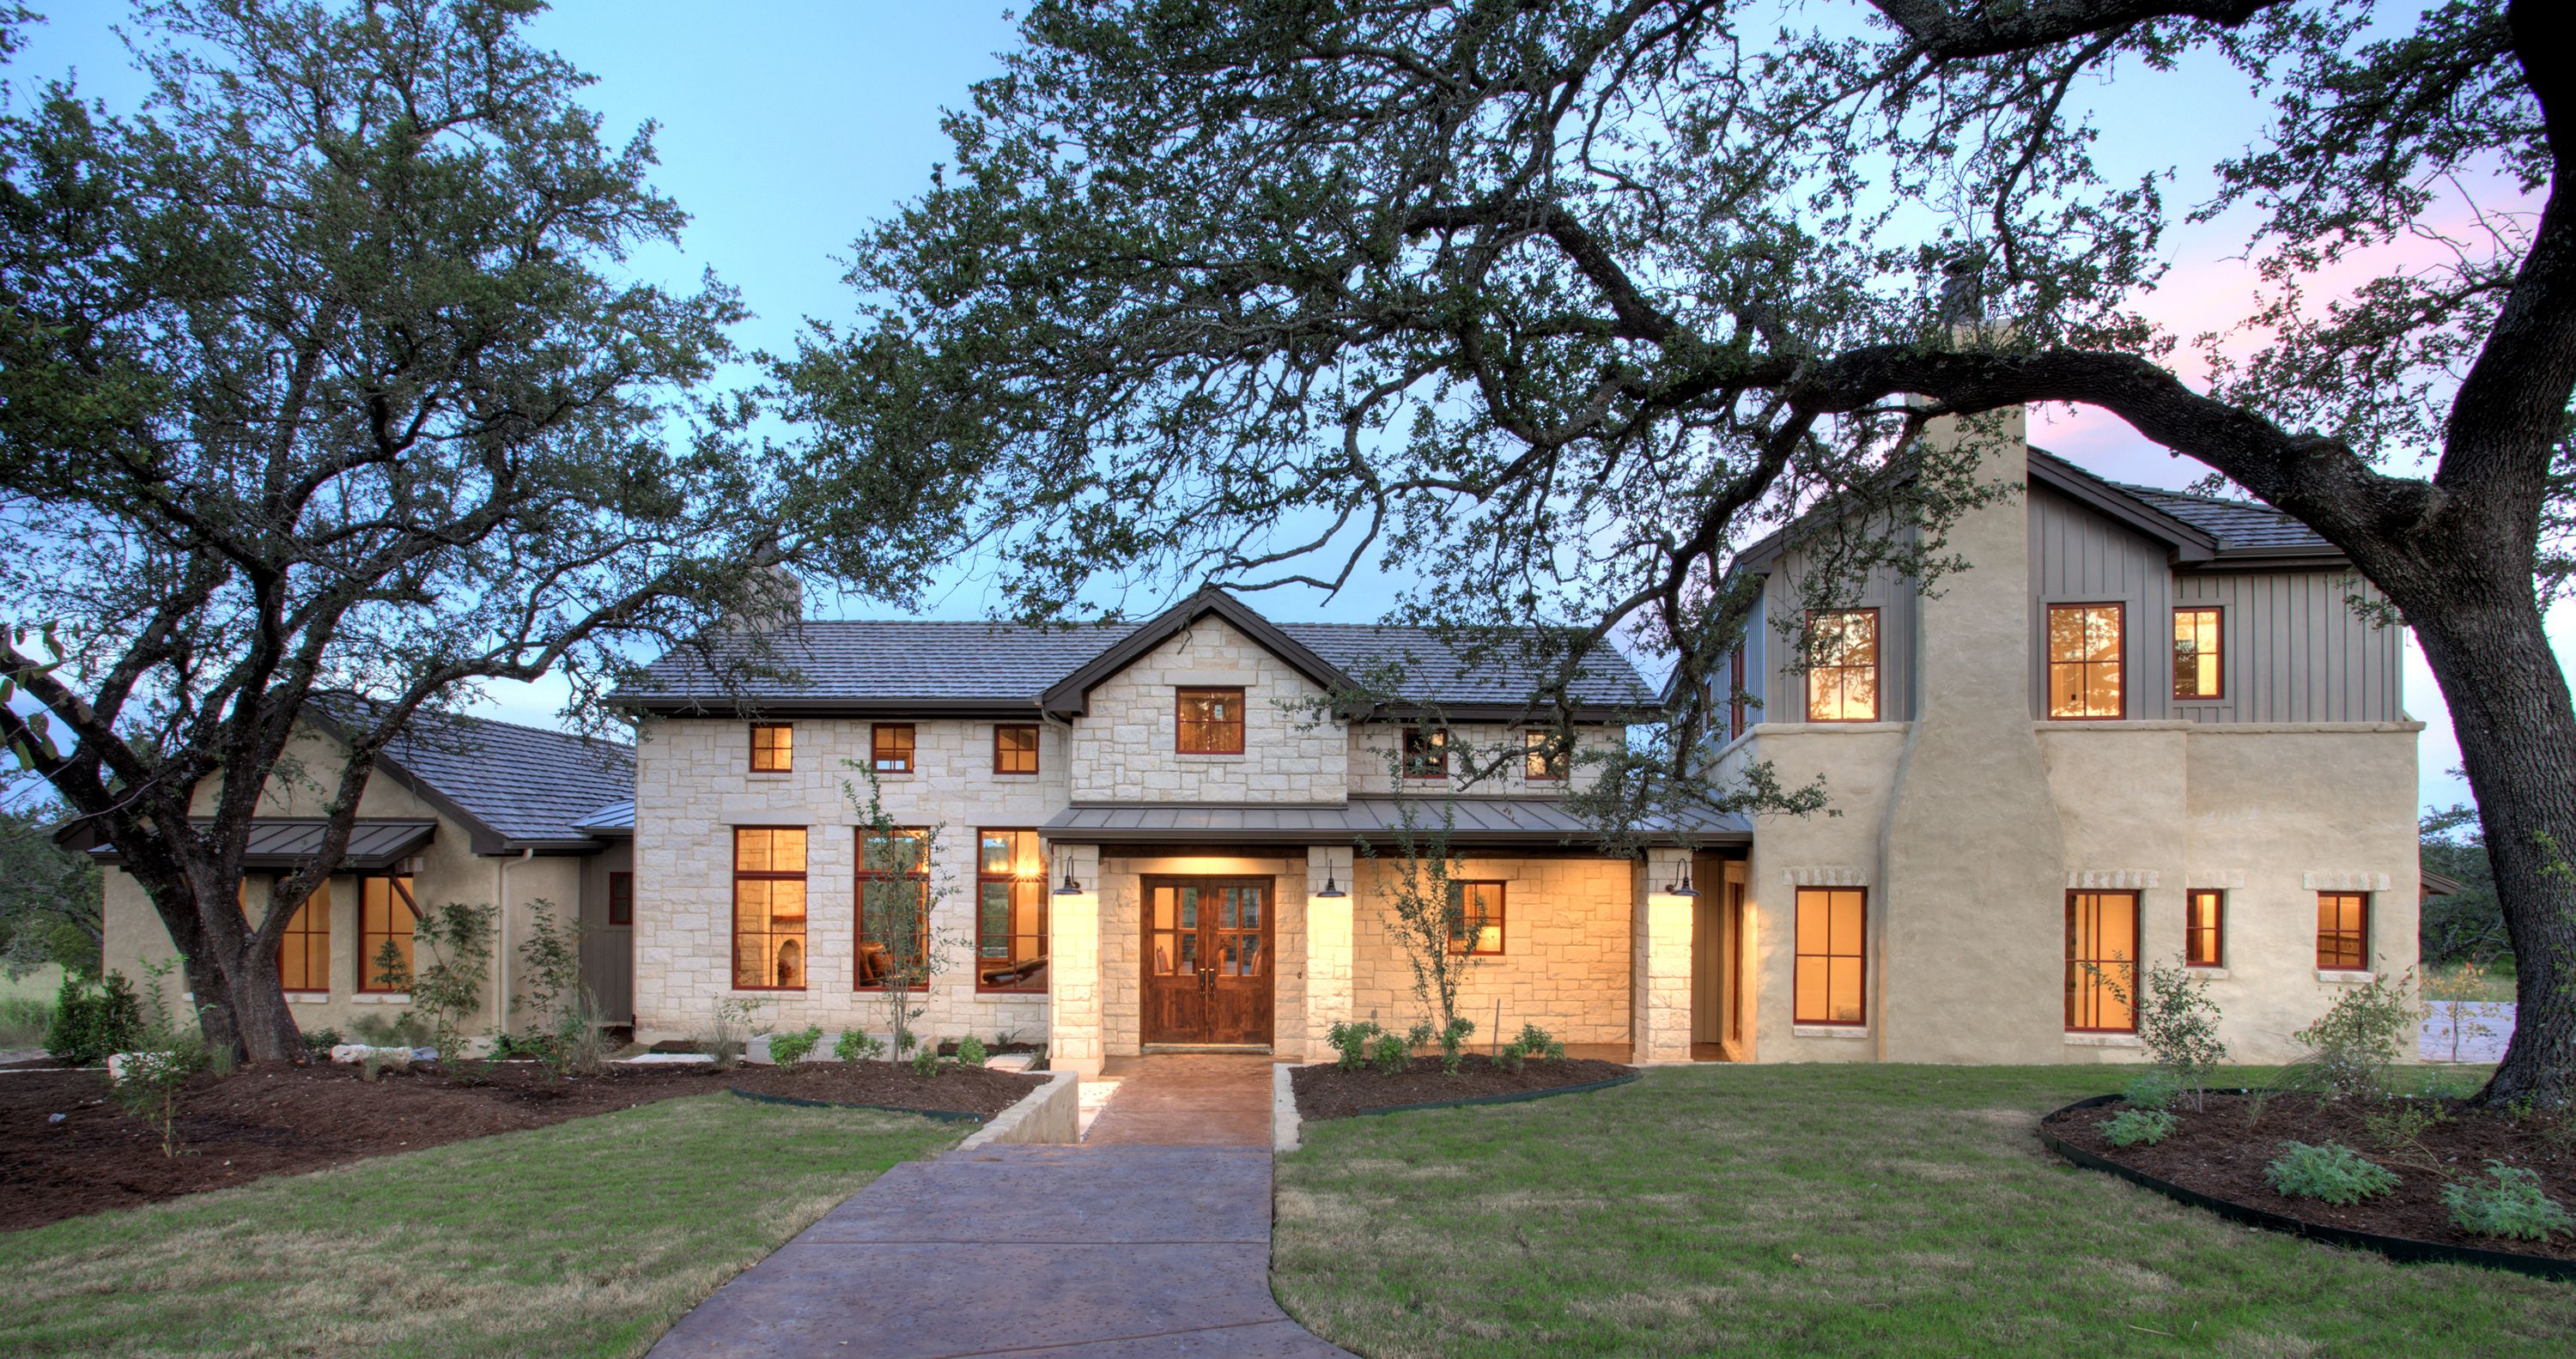 Texas hill country architecture floor plans joy studio for Texas farmhouse plans